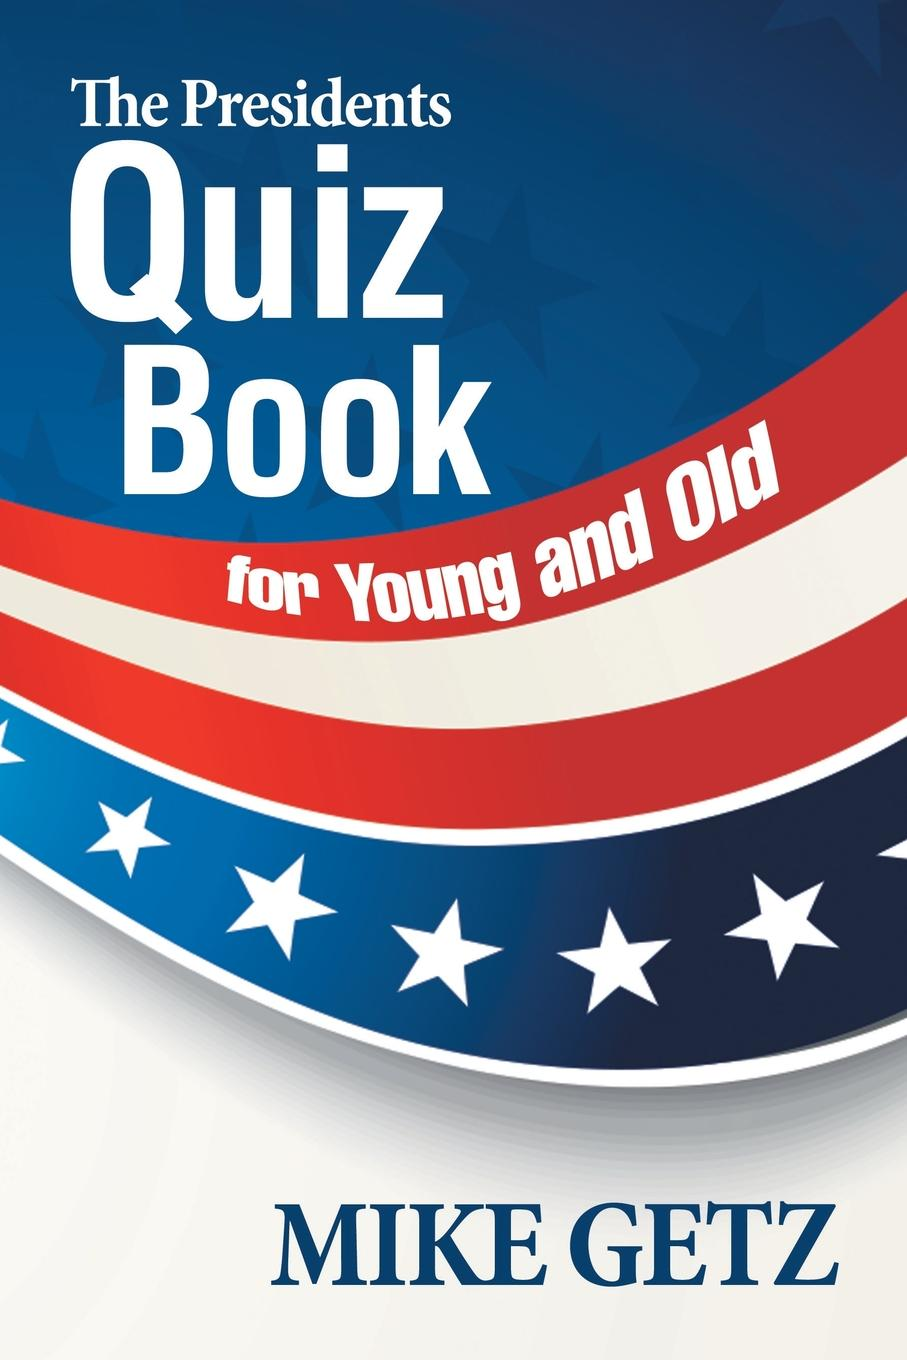 MIKE GETZ The Presidents Quiz Book for Young and Old surprise primary 2 test book